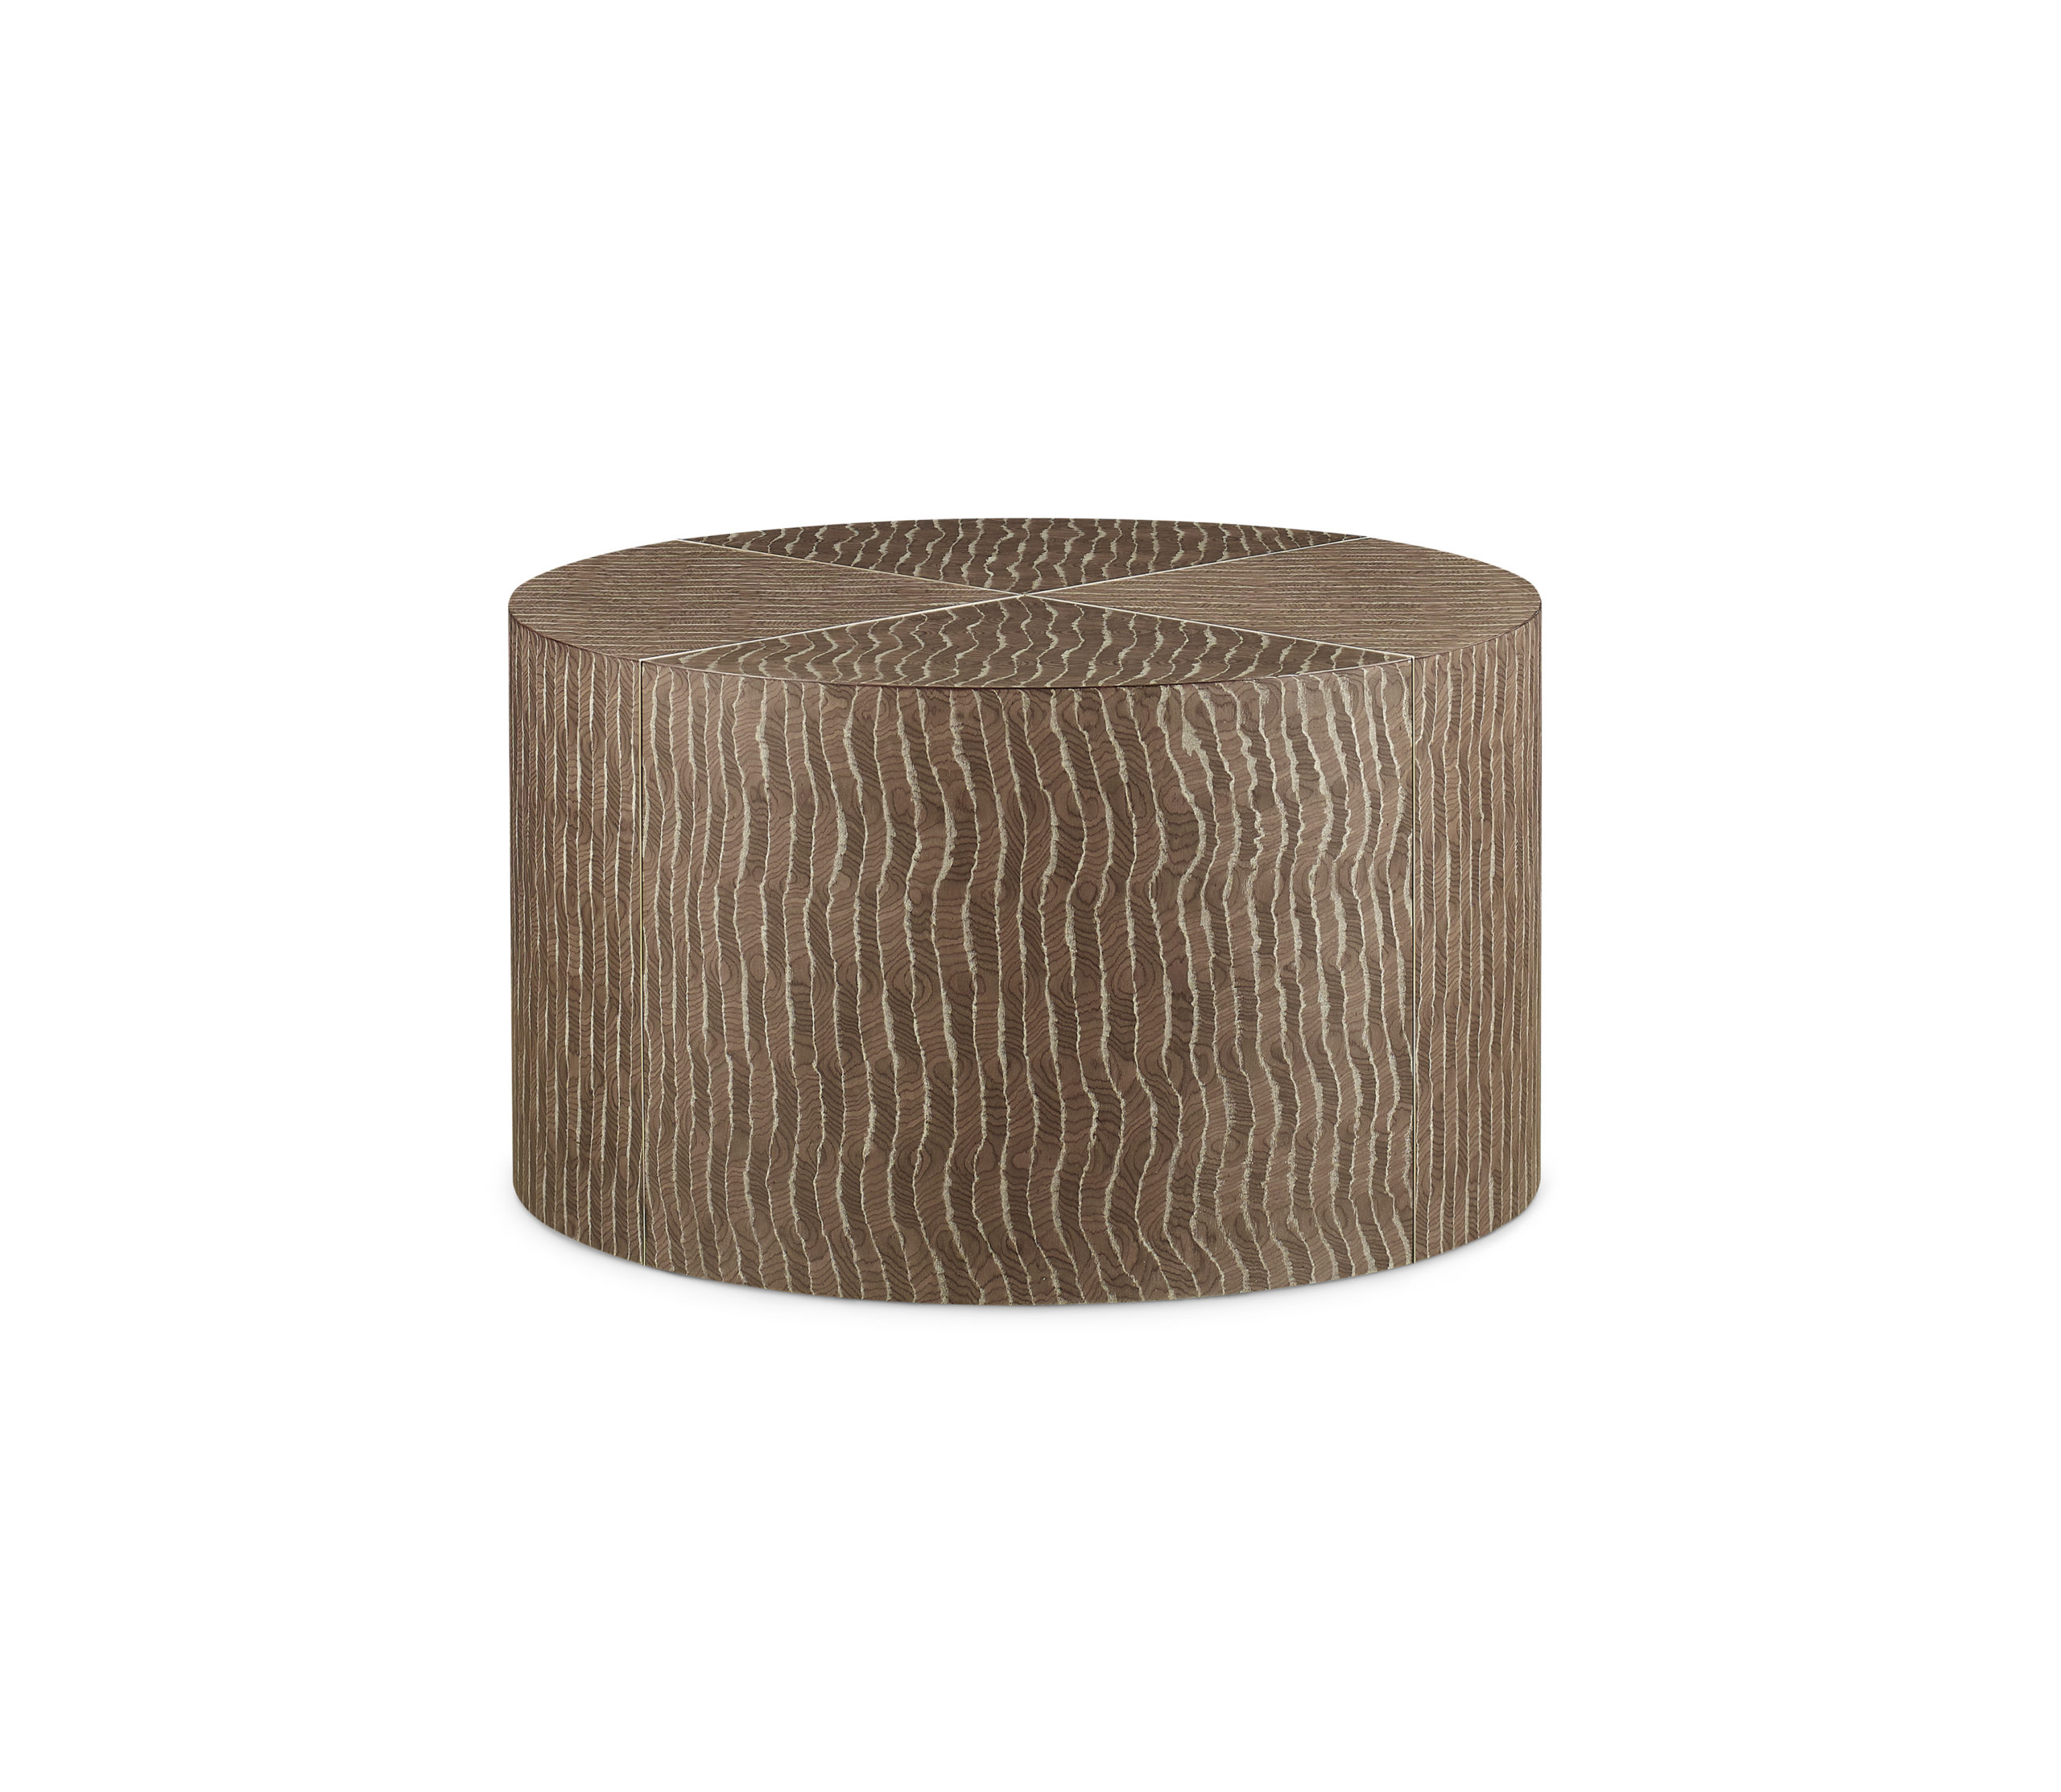 Baker_products_WNWN_cylindrical_cocktail_table_BAA3254_FRONT-scaled-2